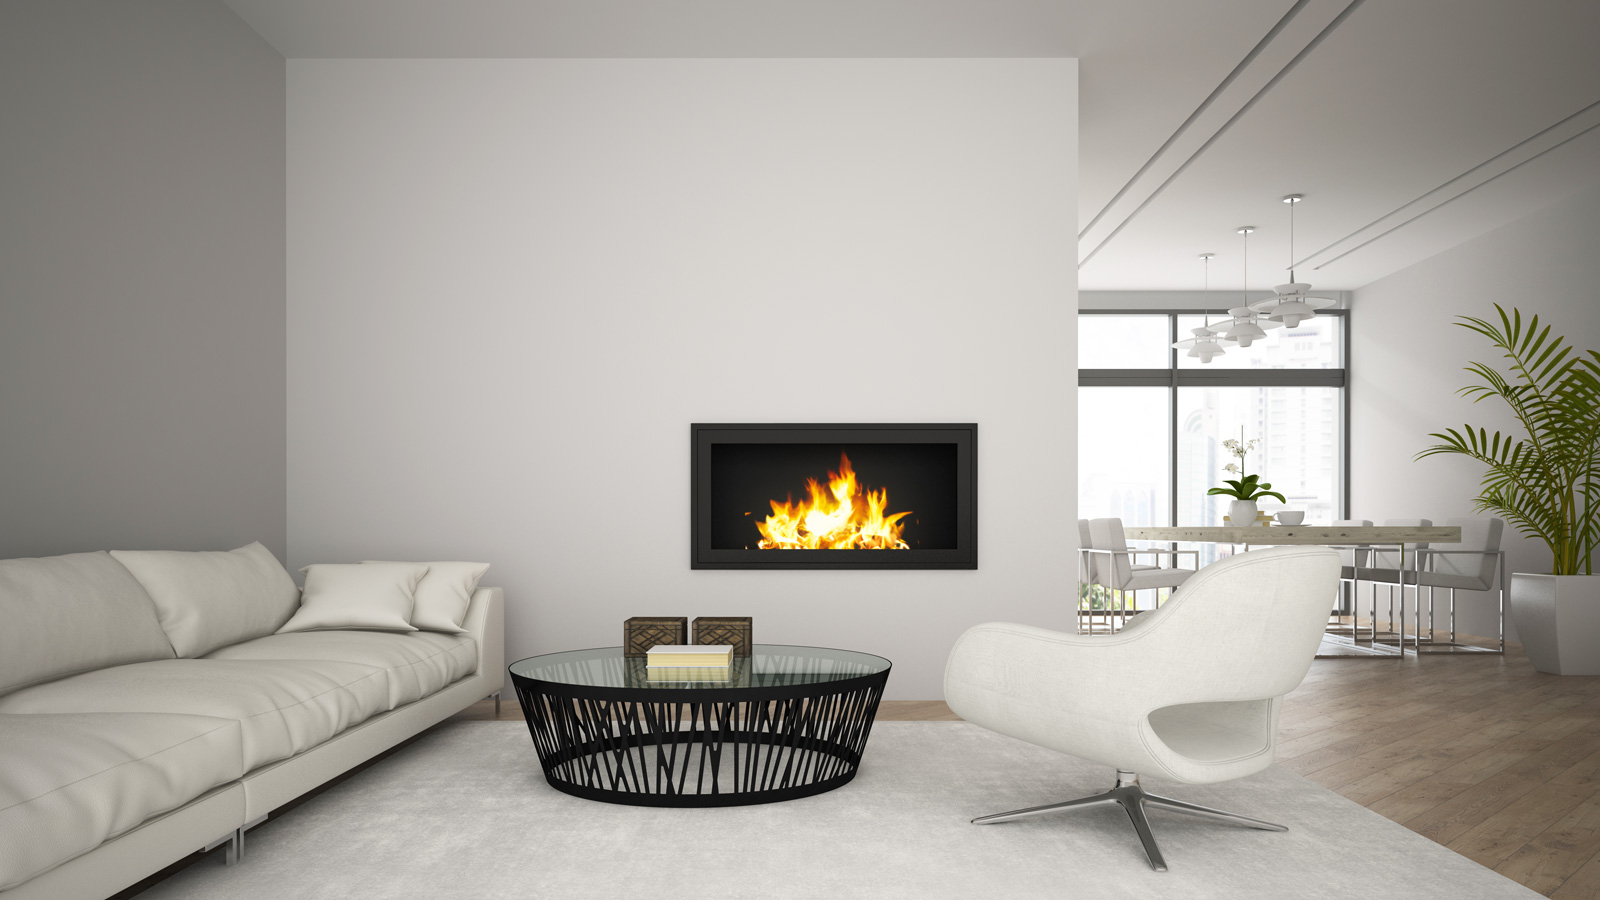 interior-of-modern-loft-with-fireplace-and-white